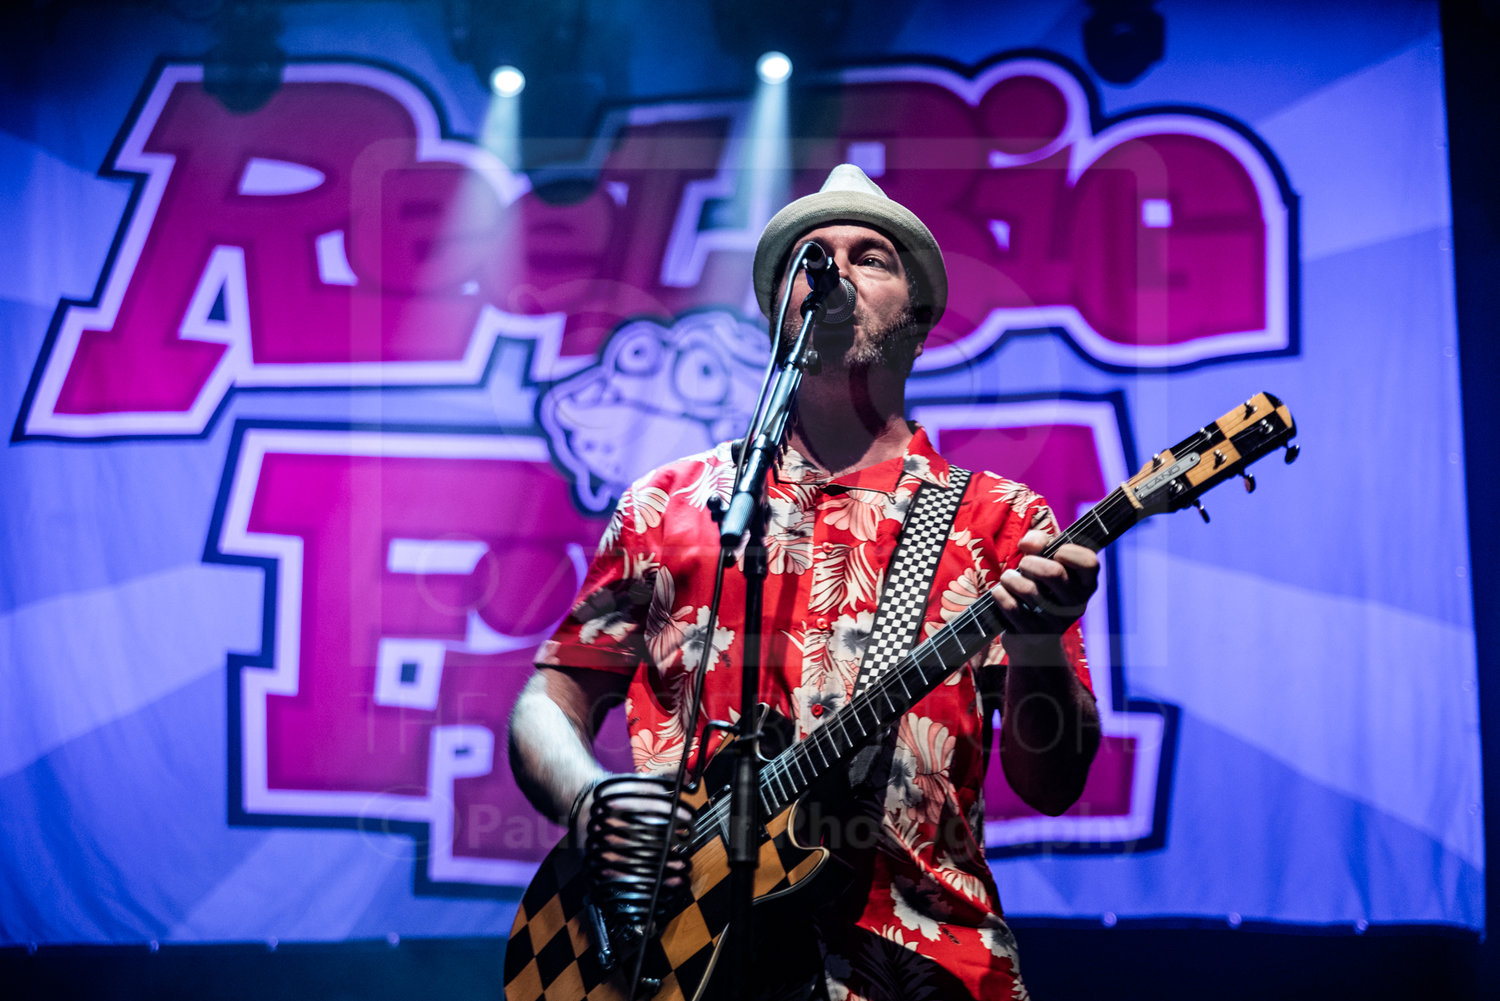 REEL BIG FISH PERFORMING AT GLASGOW'S O2 ACADEMY - 15.11.2018  PICTURE BY: PAUL STORR PHOTOGRAPHY